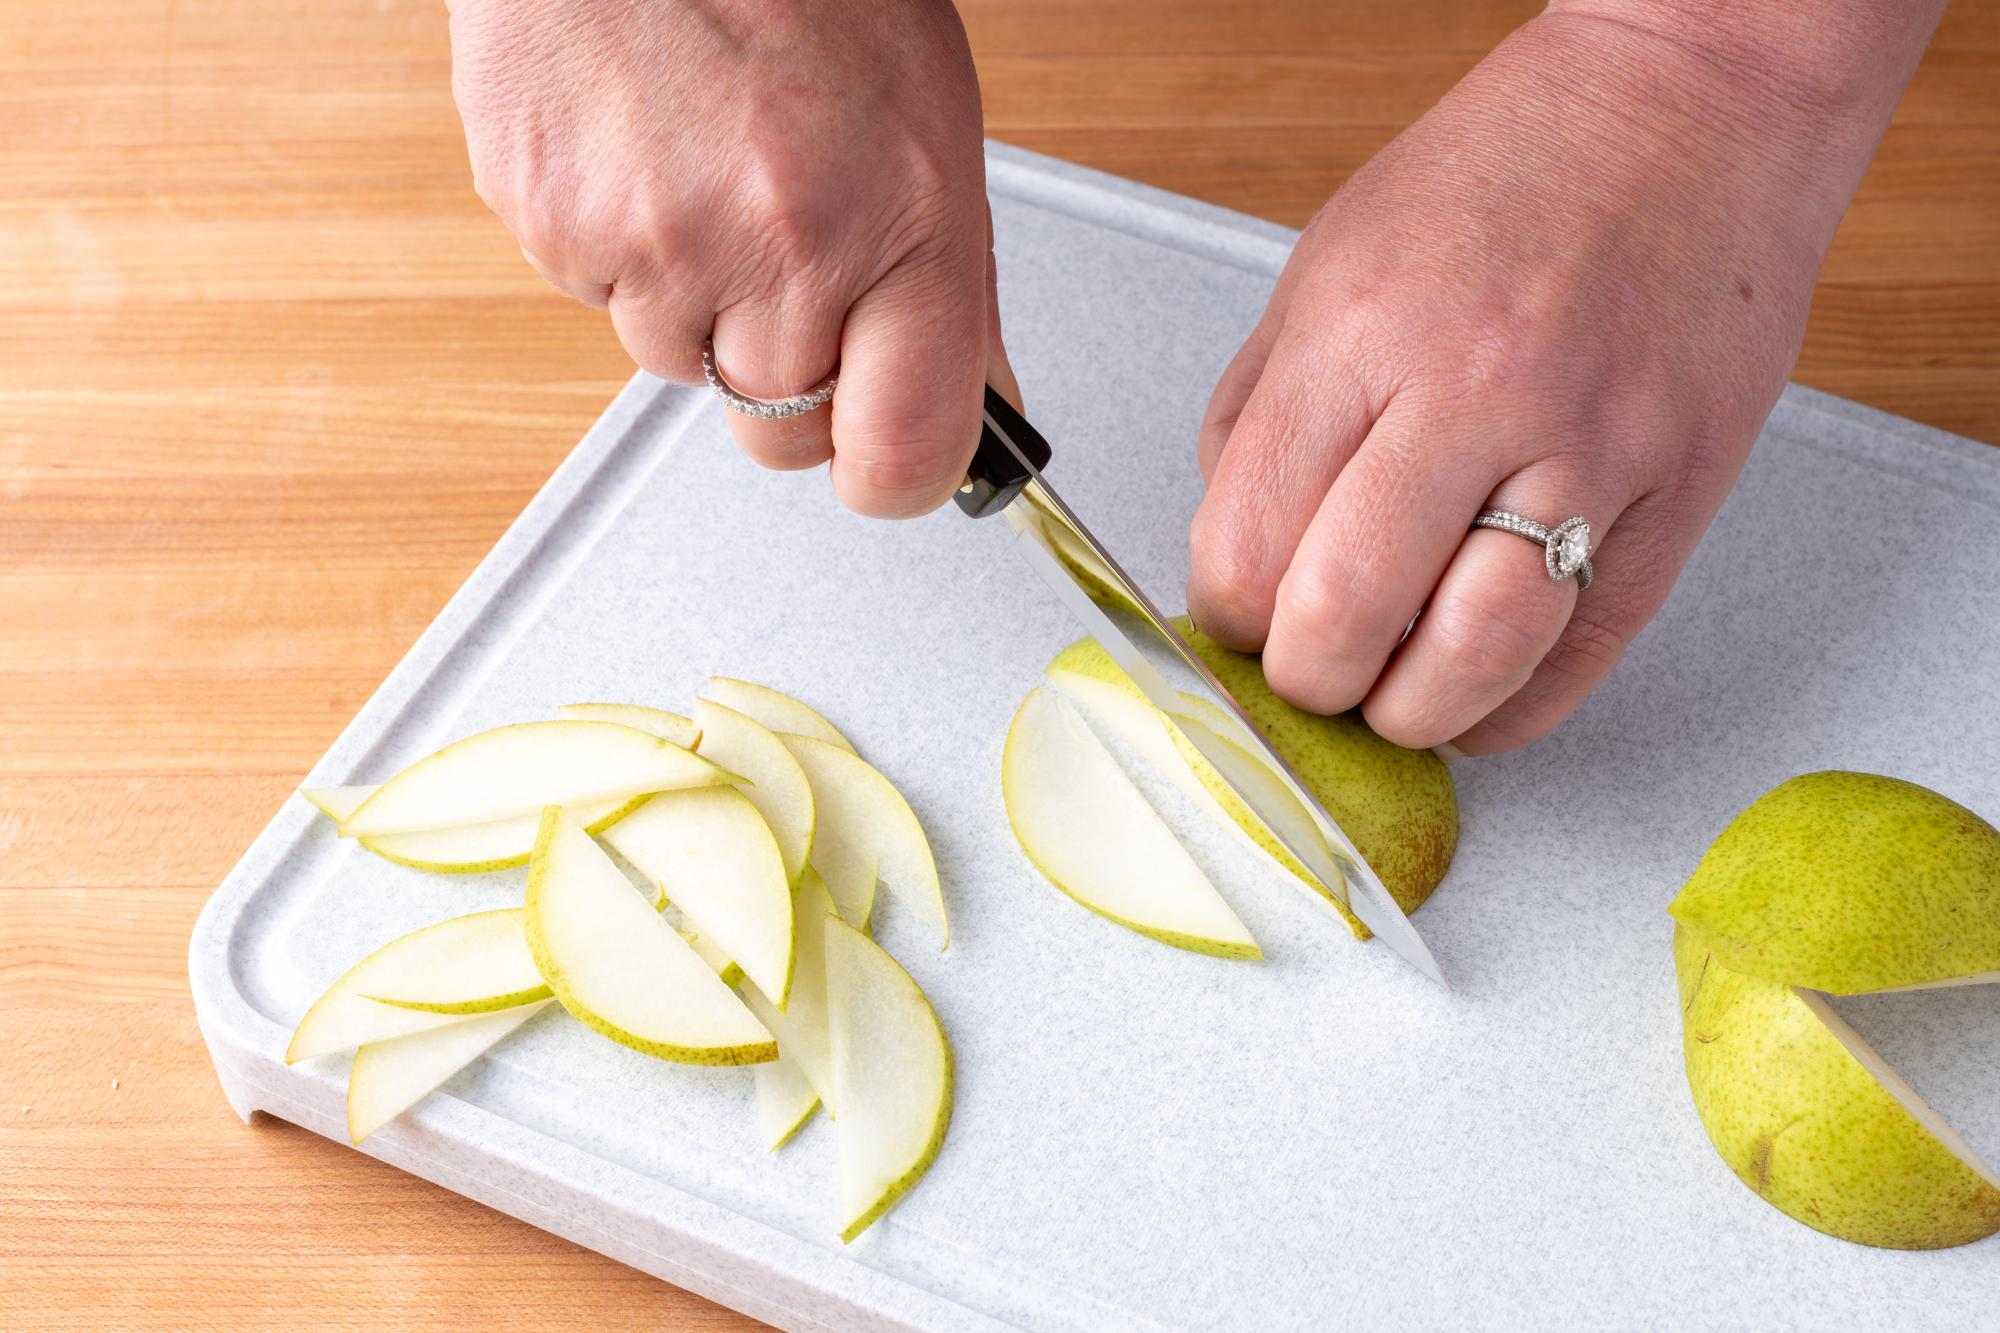 Using the 4 inch Paring knife to slice the pear.